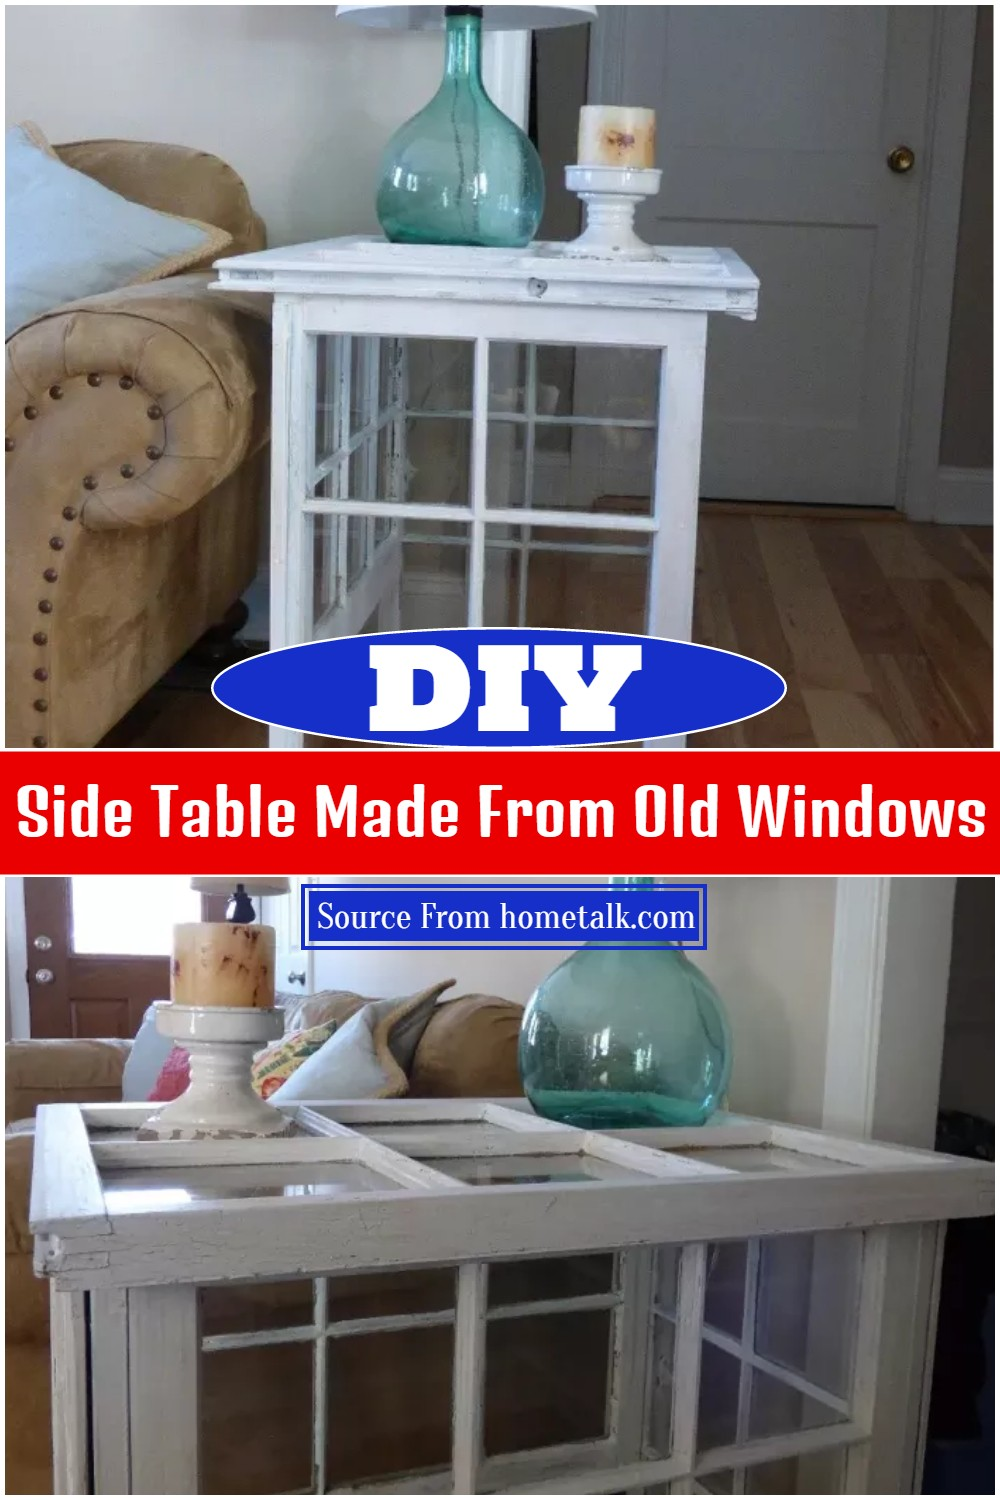 DIY Side Table Made From Old Windows